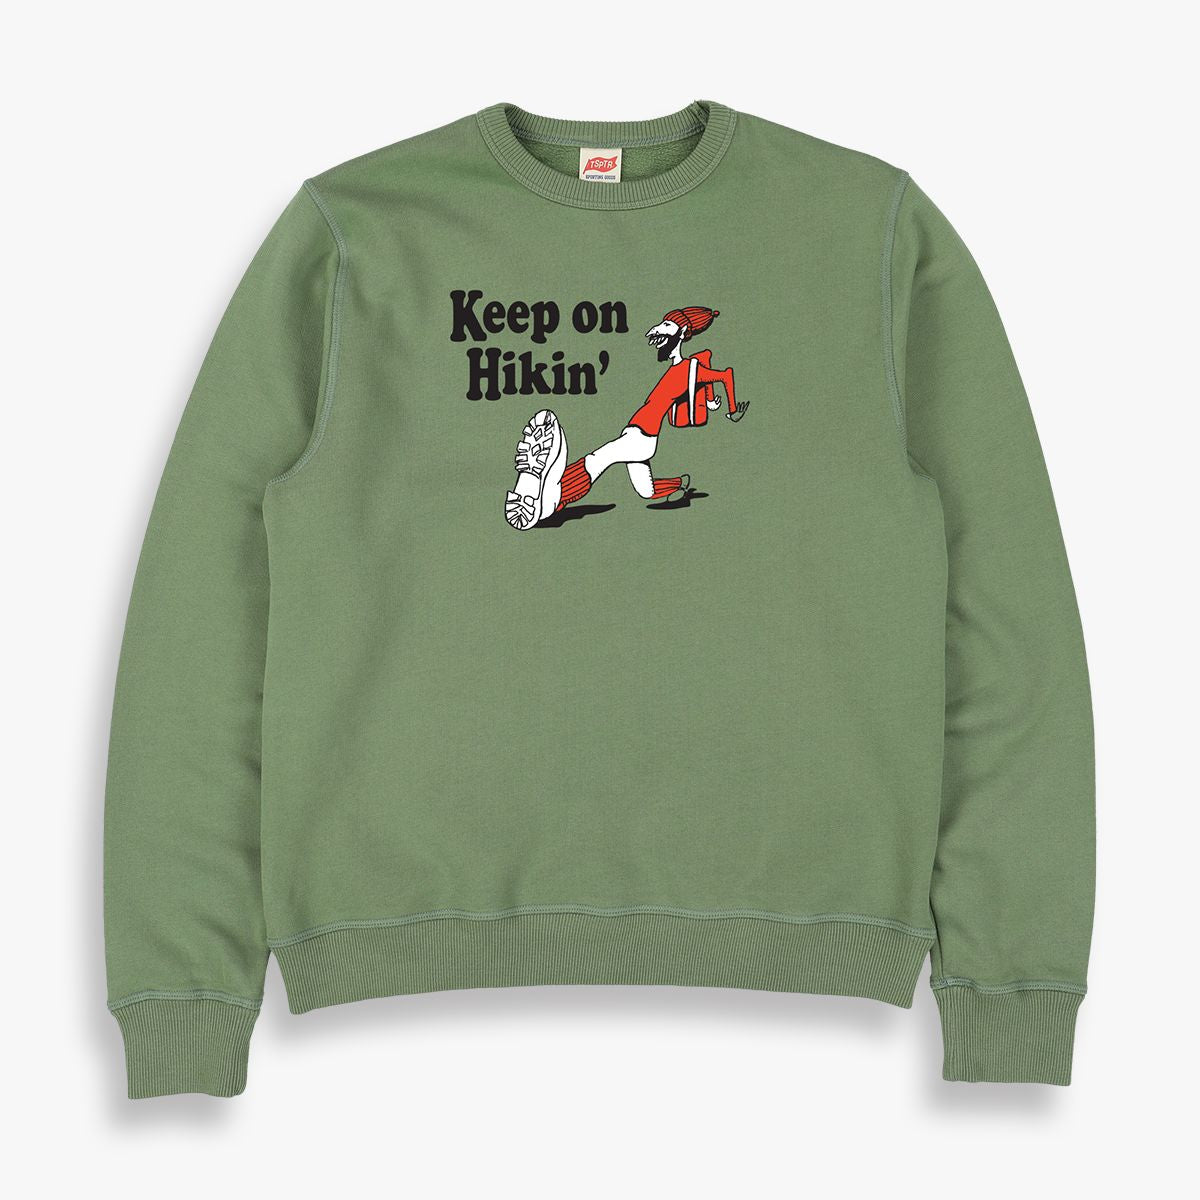 KEEP ON HIKIN' SWEATSHIRT